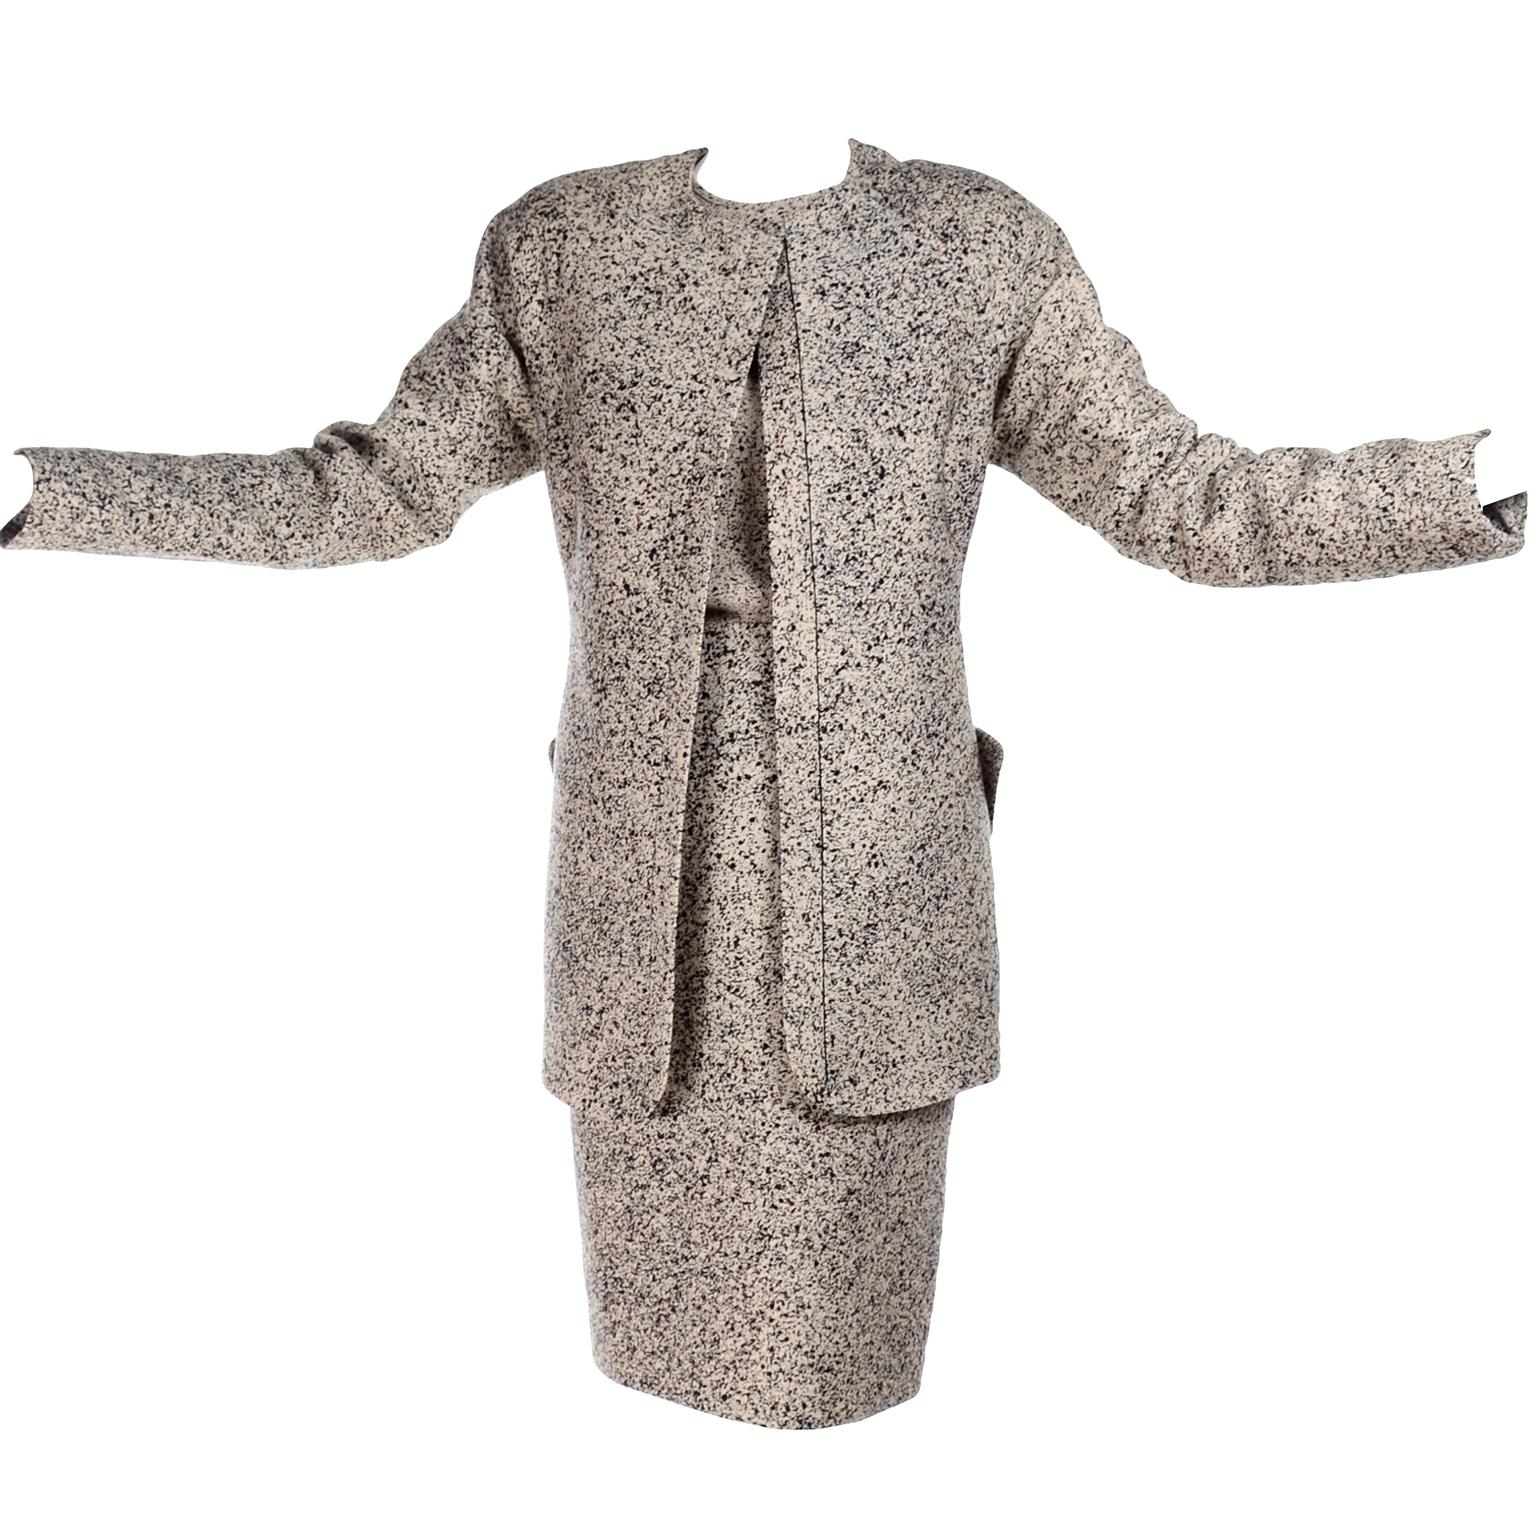 1990s Geoffrey Beene 3 Pc Outfit With Skirt Jacket & Top Suit in Speckled Knit